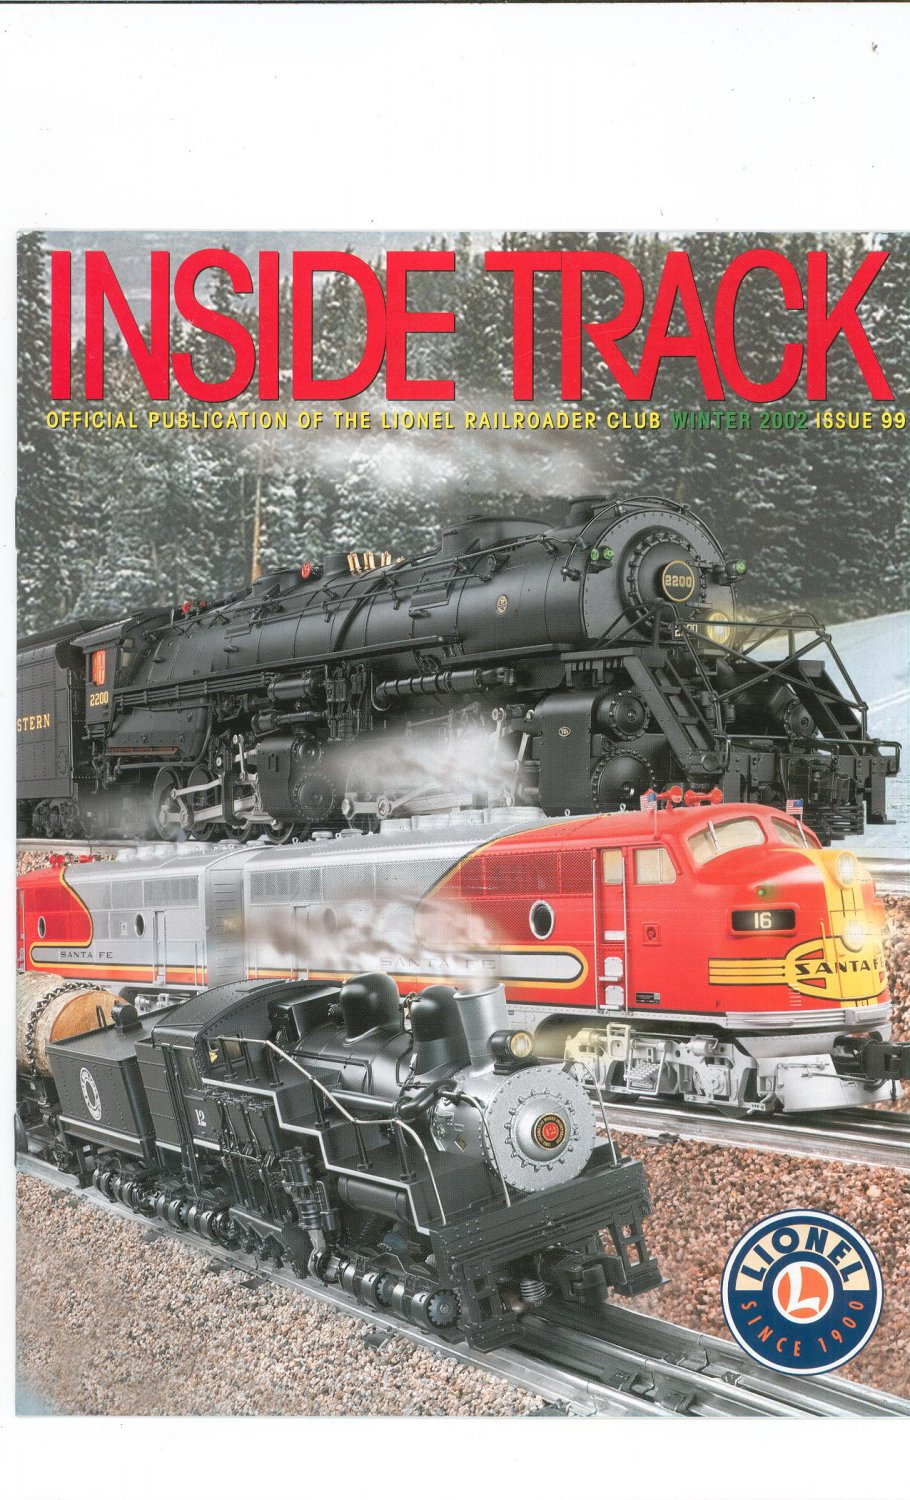 Lionel Railroader Club Inside Track Winter 2002 Issue 99 Not PDF Train Free Shipping Offer